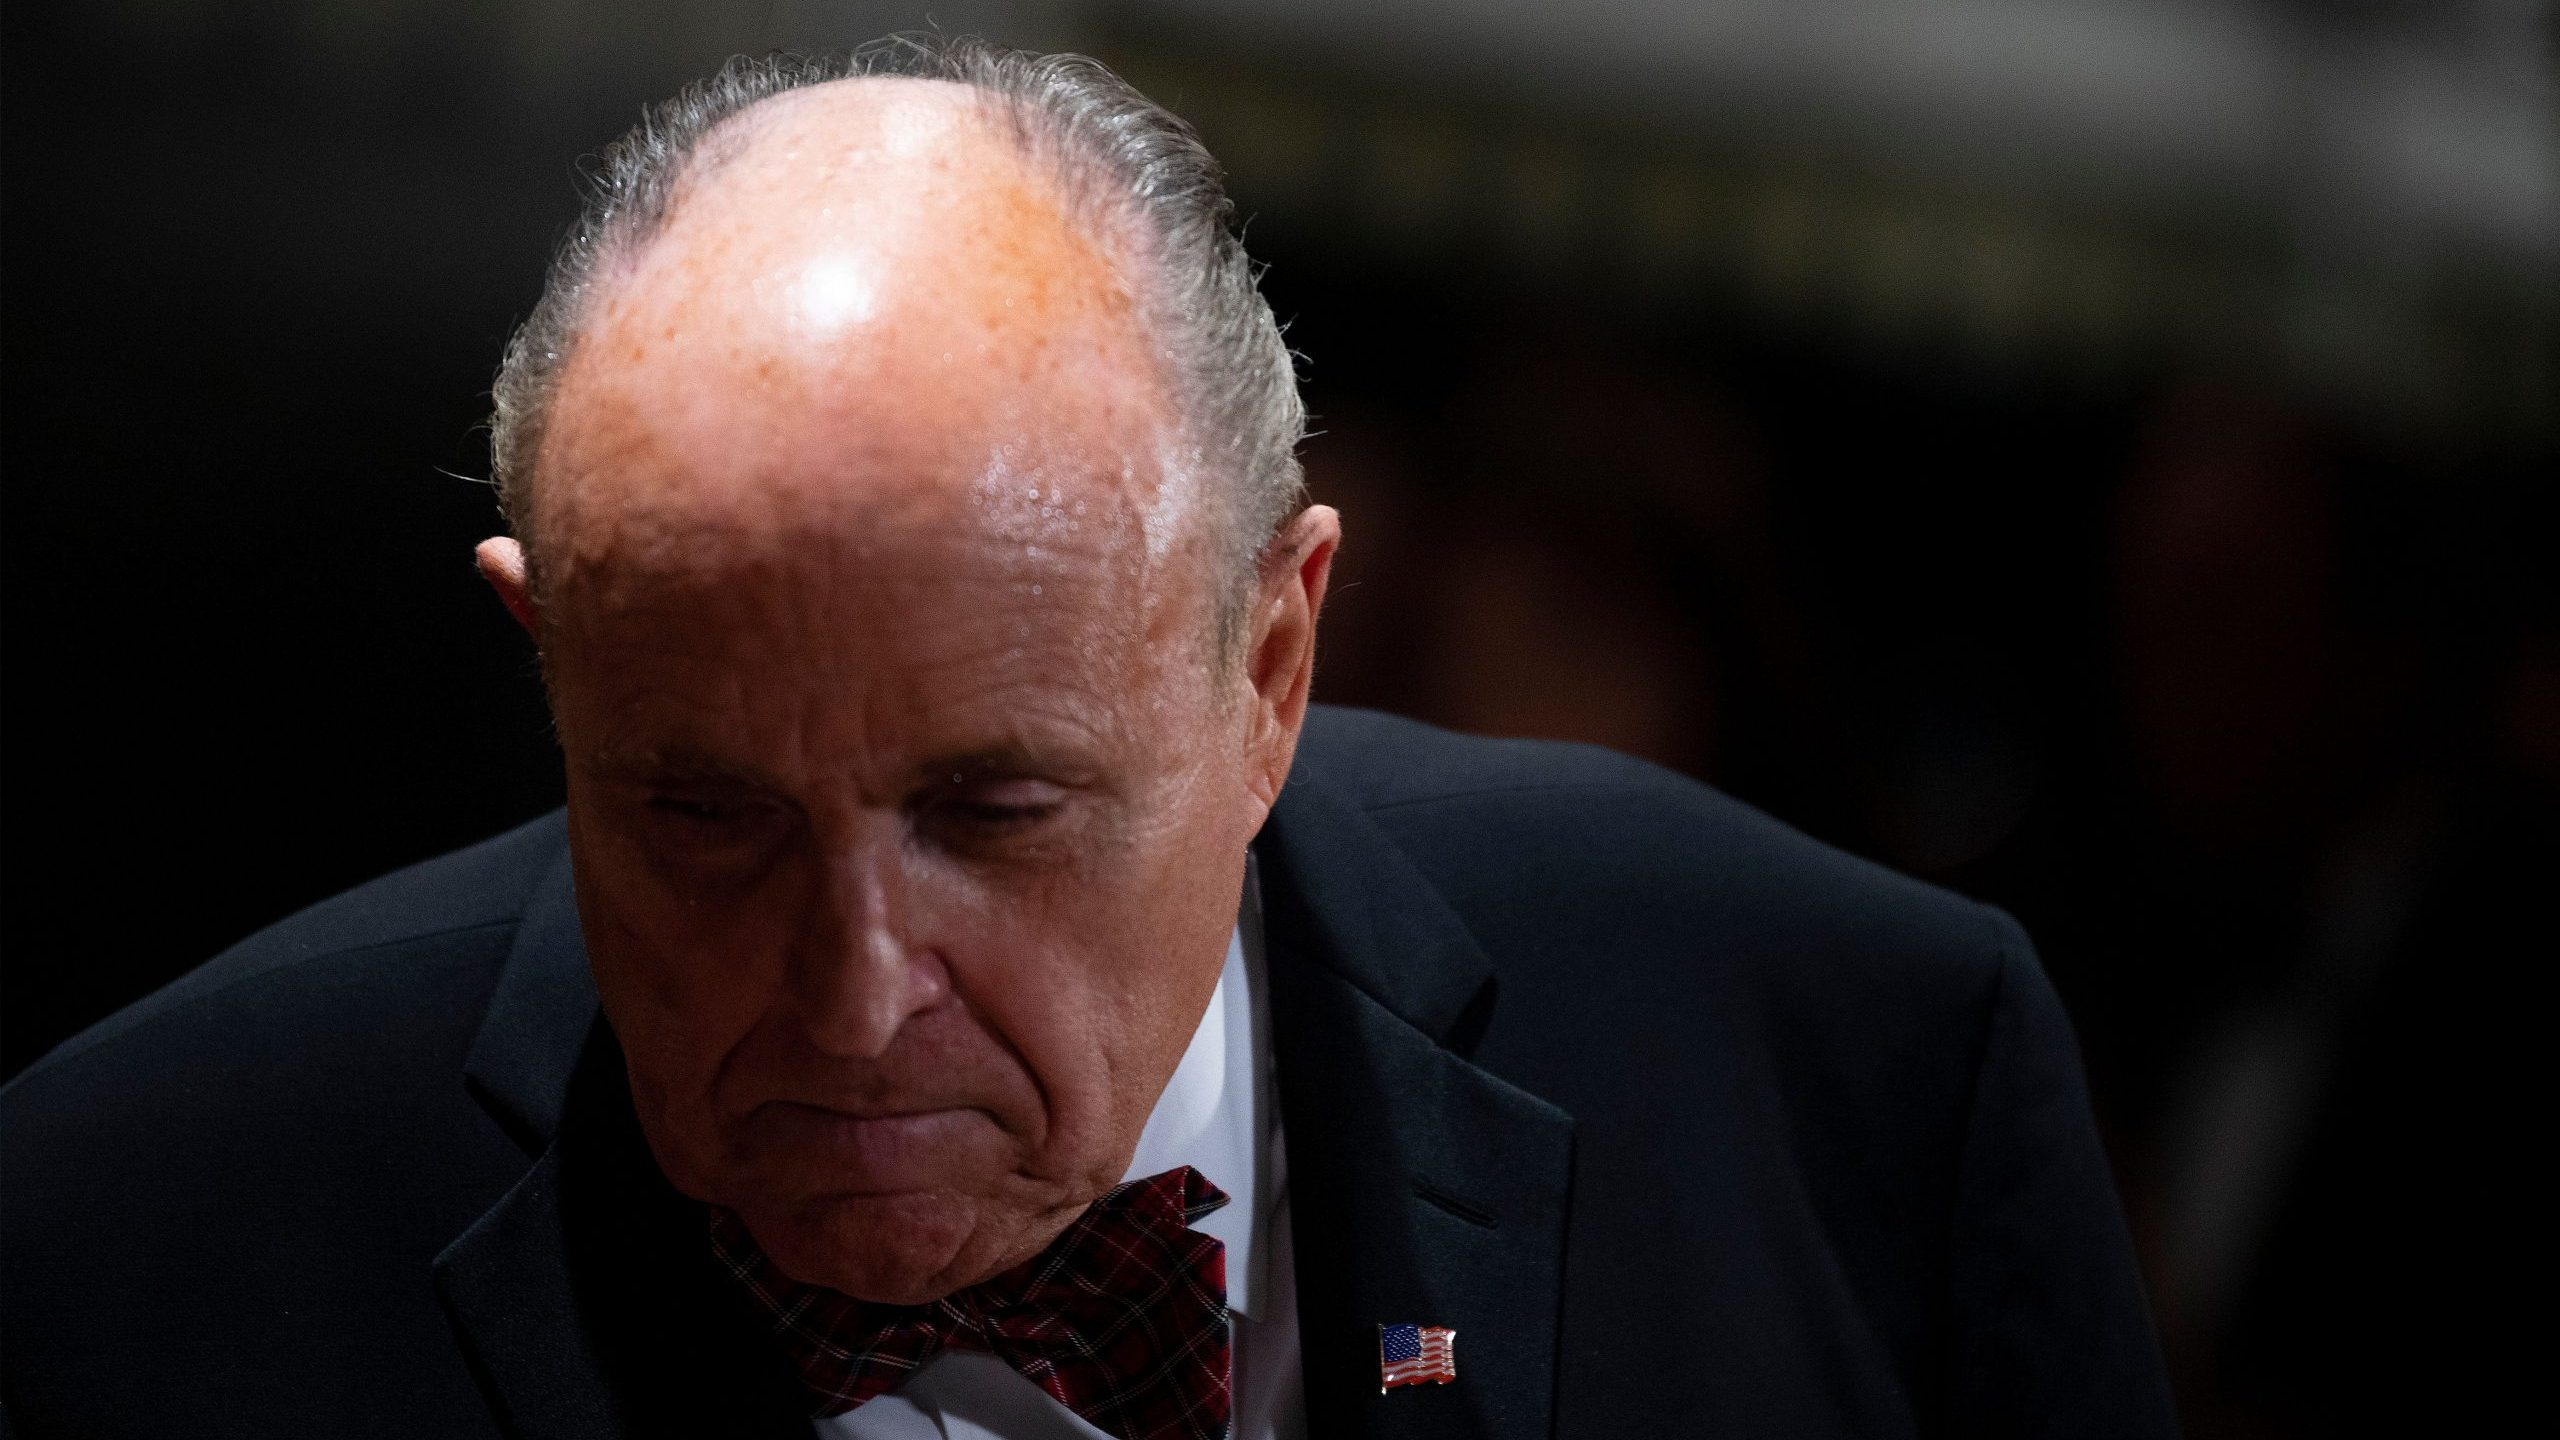 Donald Trump's personal lawyer Rudy Giuliani arrives for a New Year's celebration at Mar-a-Lago in Palm Beach, Florida, on Dec. 31, 2019. (Credit: Jim Watson/AFP via Getty Images)